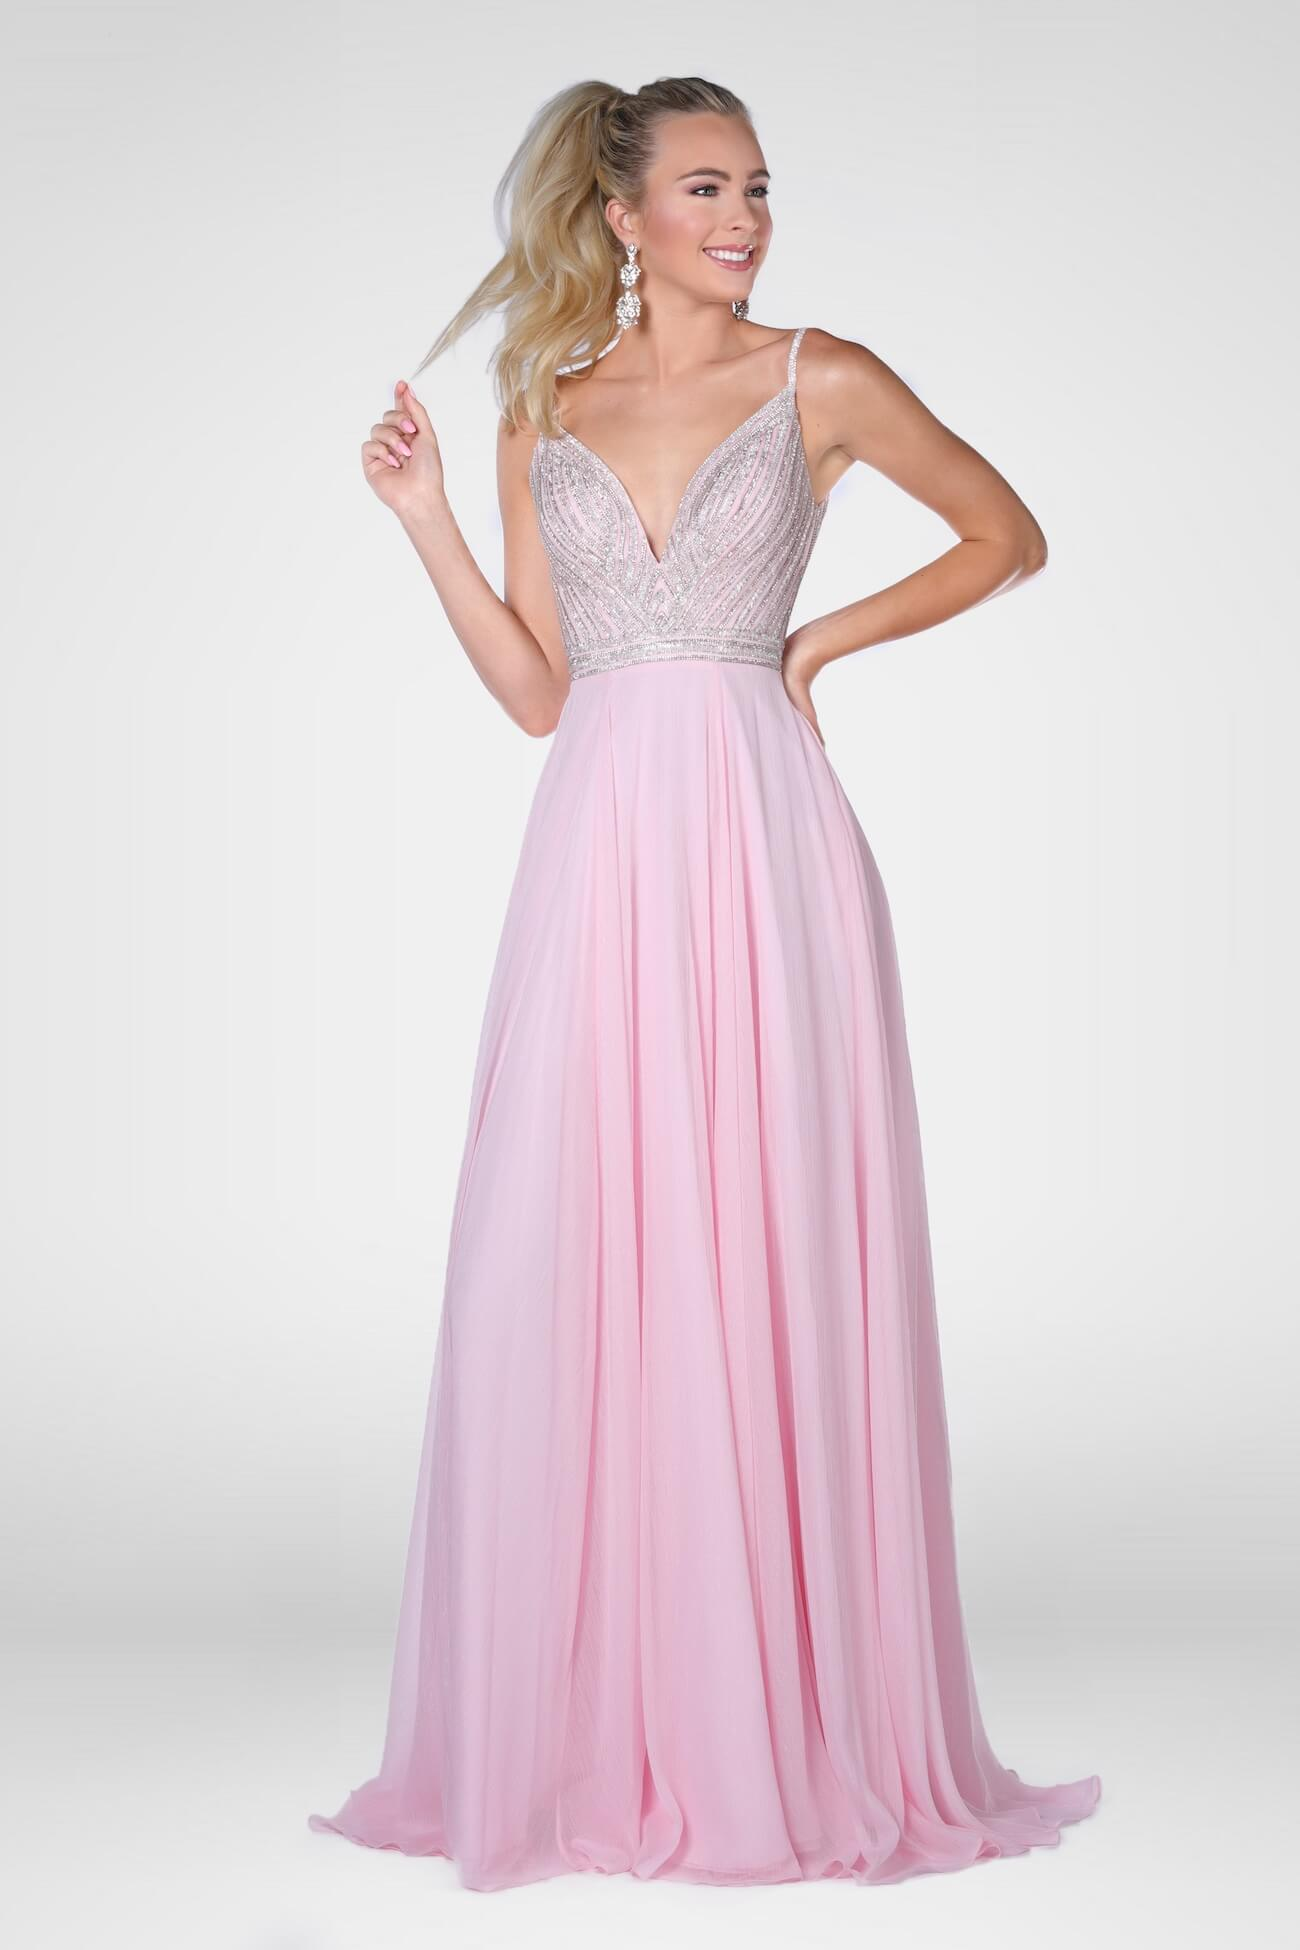 Vienna Light Pink Size 8 A-line Dress on Queenly